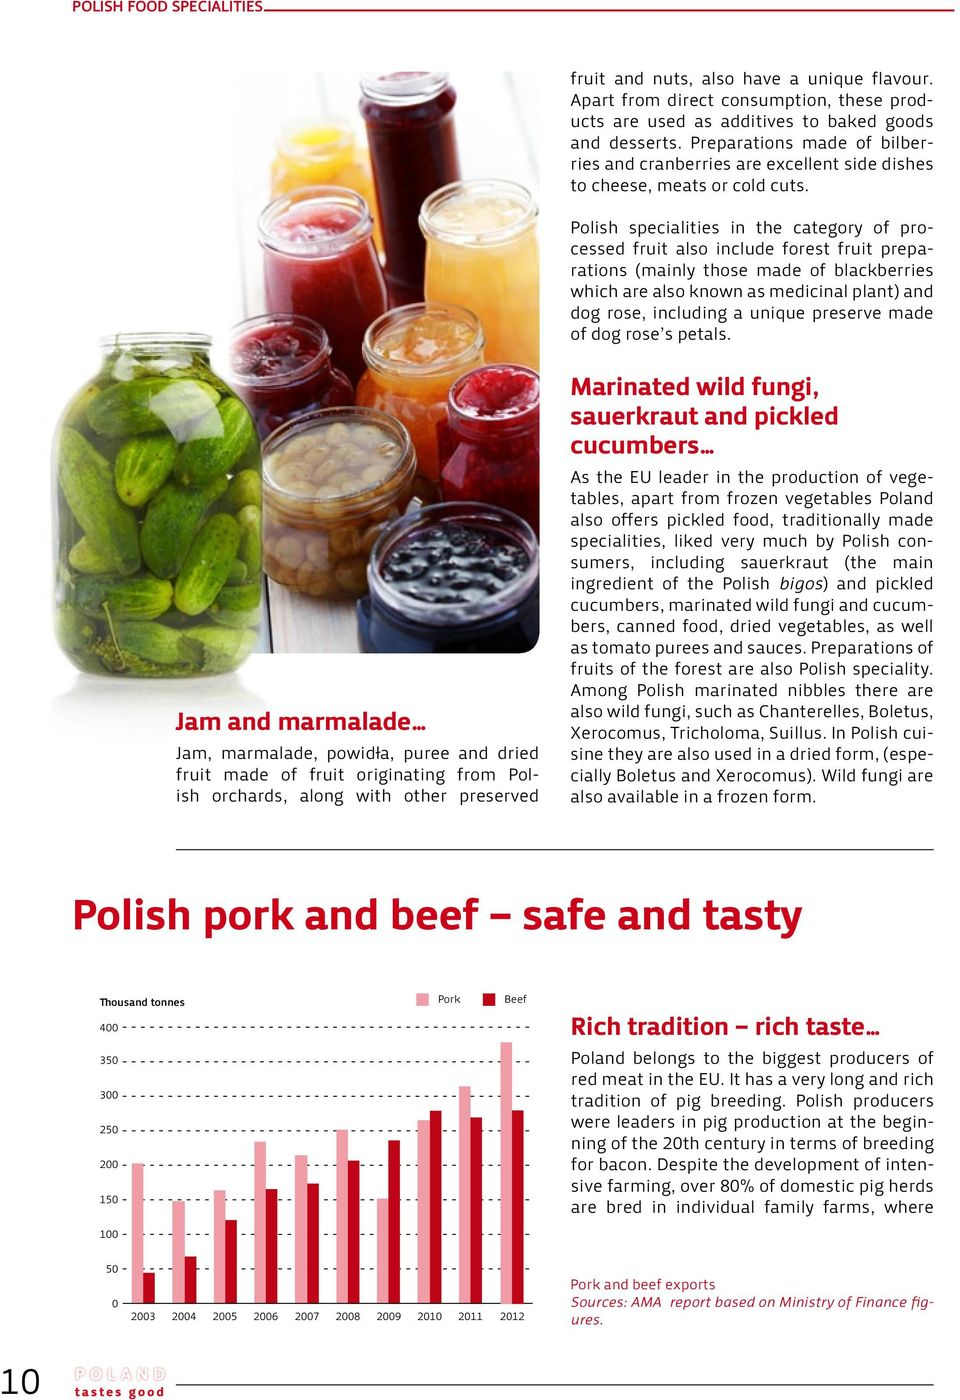 Polish specialities in the category of processed fruit also include forest fruit preparations (mainly those made of blackberries which are also known as medicinal plant) and dog rose, including a